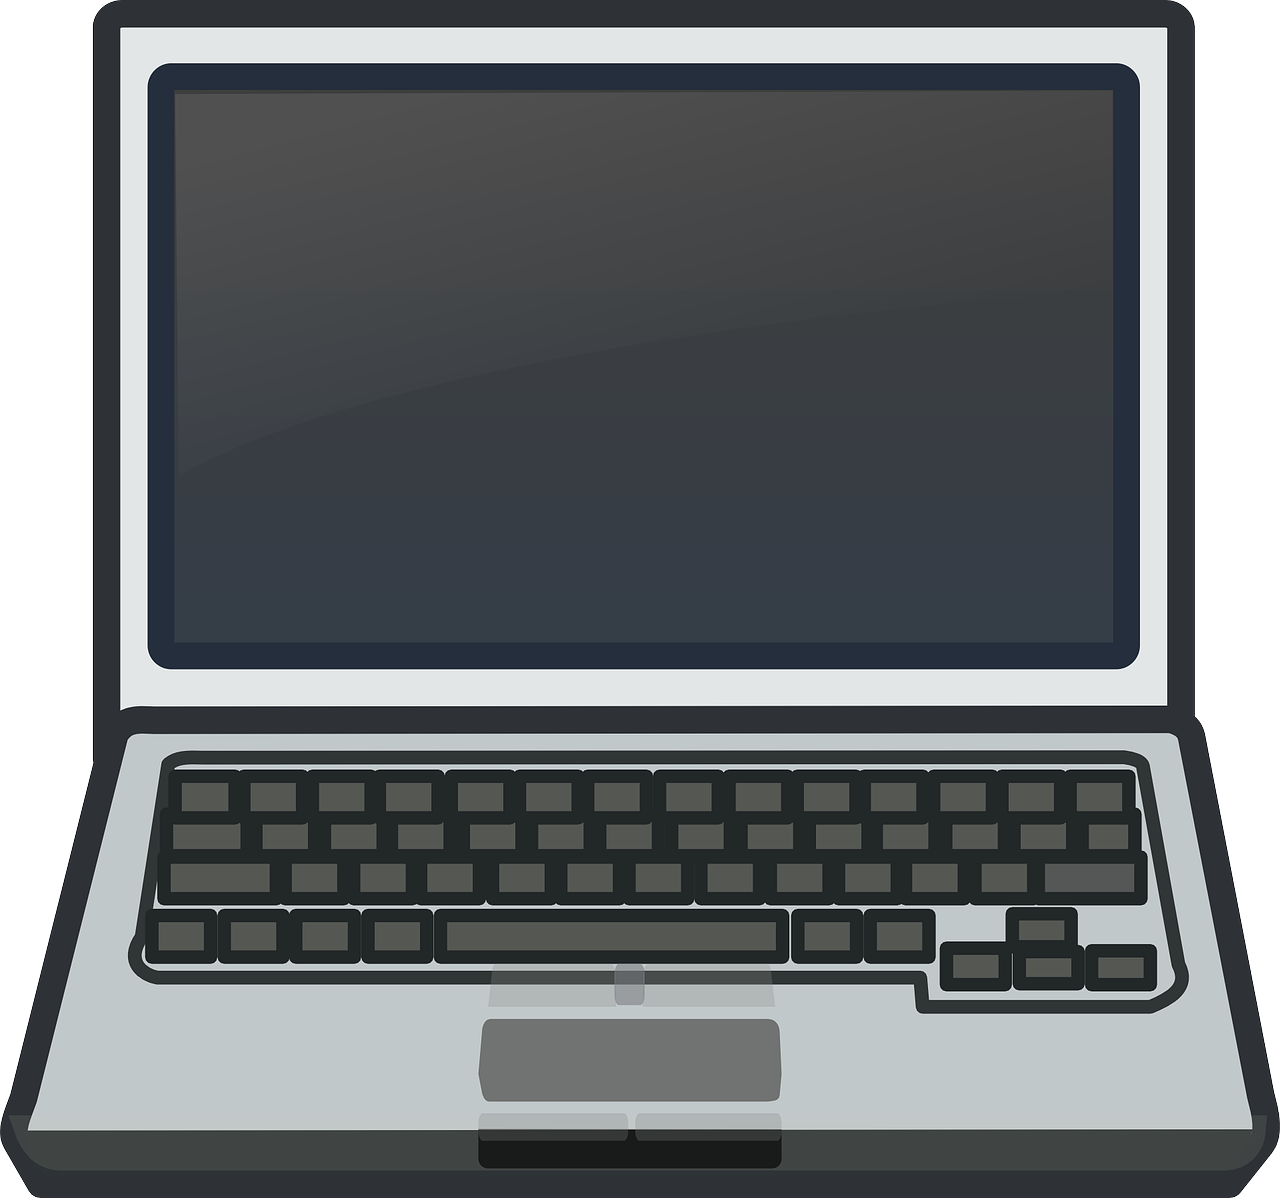 Computer laptop free vector. Pc clipart notebook